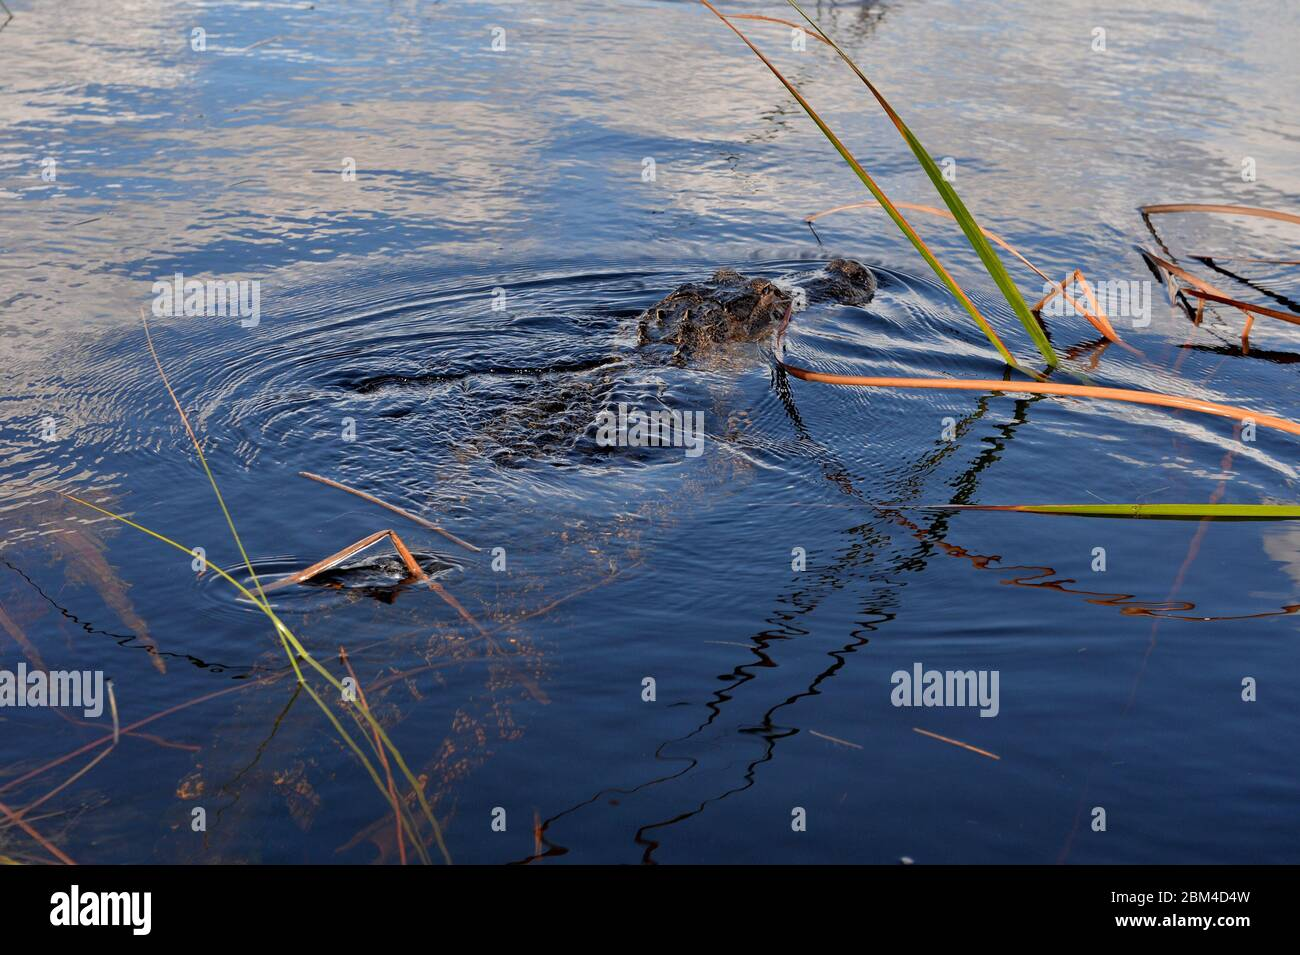 Davie, United States Of America. 23rd Aug, 2016. DAVIE, FL - JUNE 08: Arm found inside alligator pulled from Davie lake; woman believed to be dead - Woman vanishes while walking dogs at Silver Lakes Rotary Nature Park. Note No danger signs were posted and residents claim Fort Lauderdale authorities knew that the deadly alligator was there on June 8, 2018 in Miami Beach, Florida People: Woman Dead Credit: Storms Media Group/Alamy Live News Stock Photo